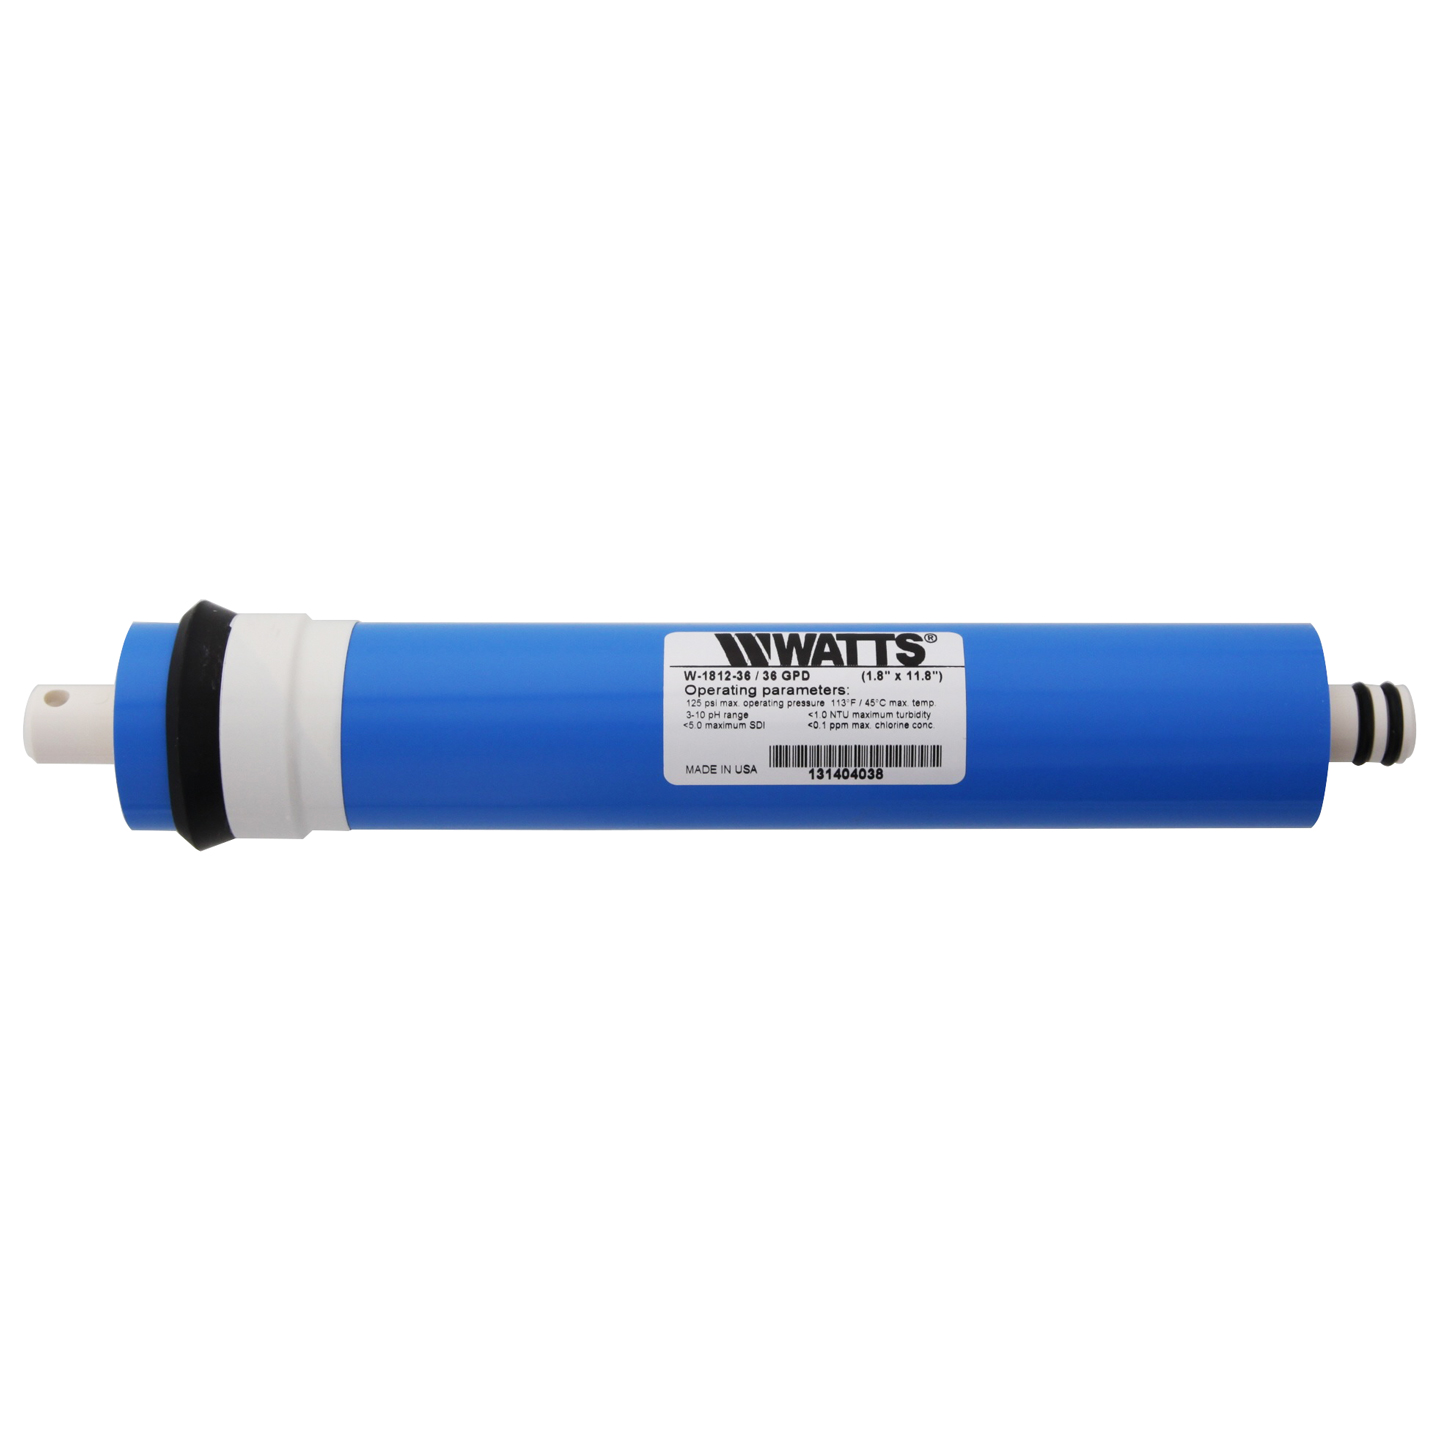 Watts W-1812-36 Replacement Reverse Osmosis Membrane WATTS-W-1812-36